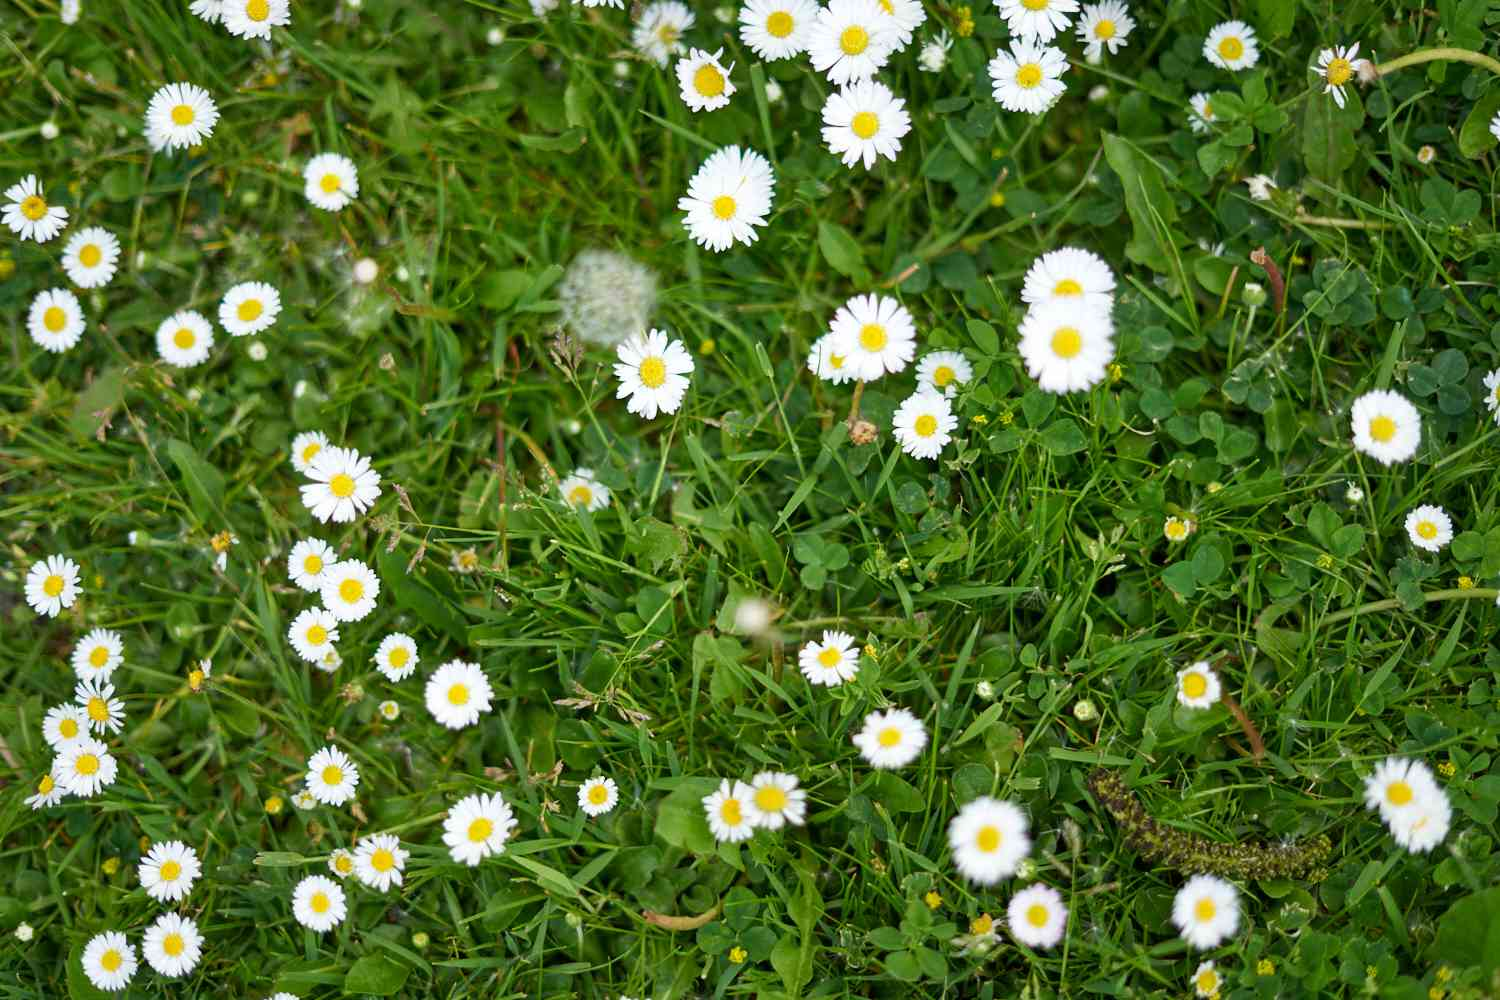 overhead view of european native plant lawn daisy growing wild